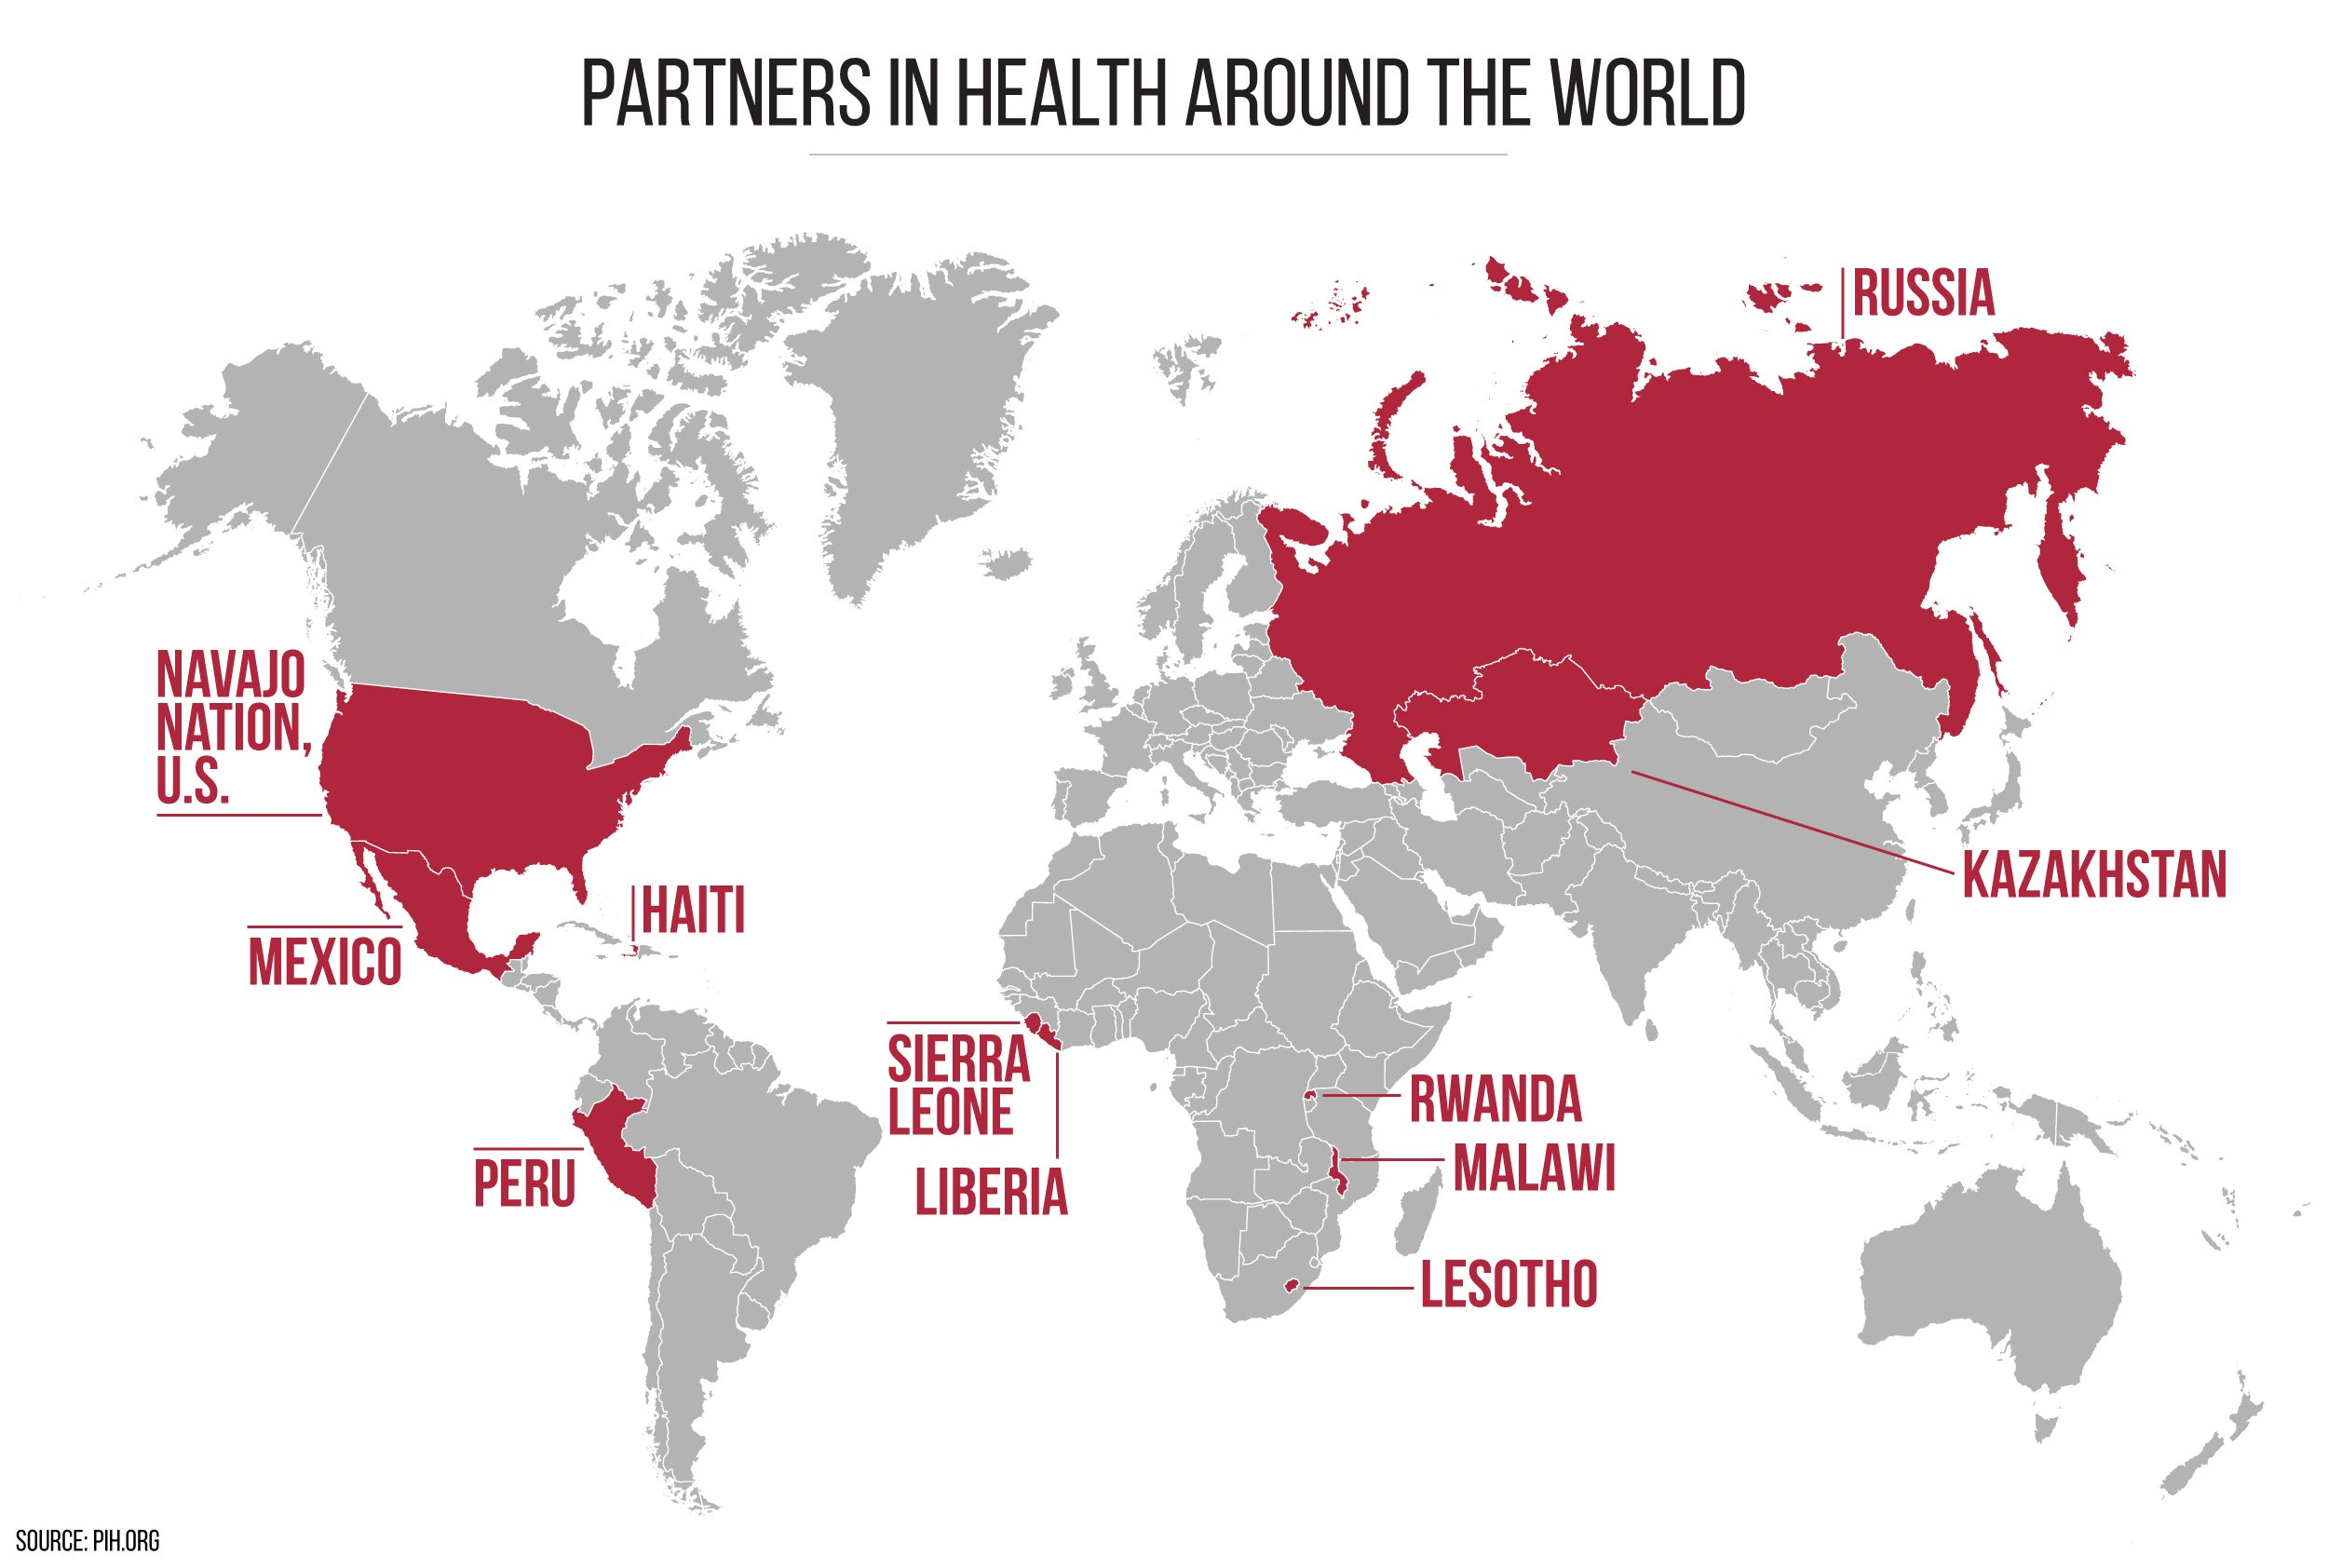 World map marking countries where Partners in Health has programs.